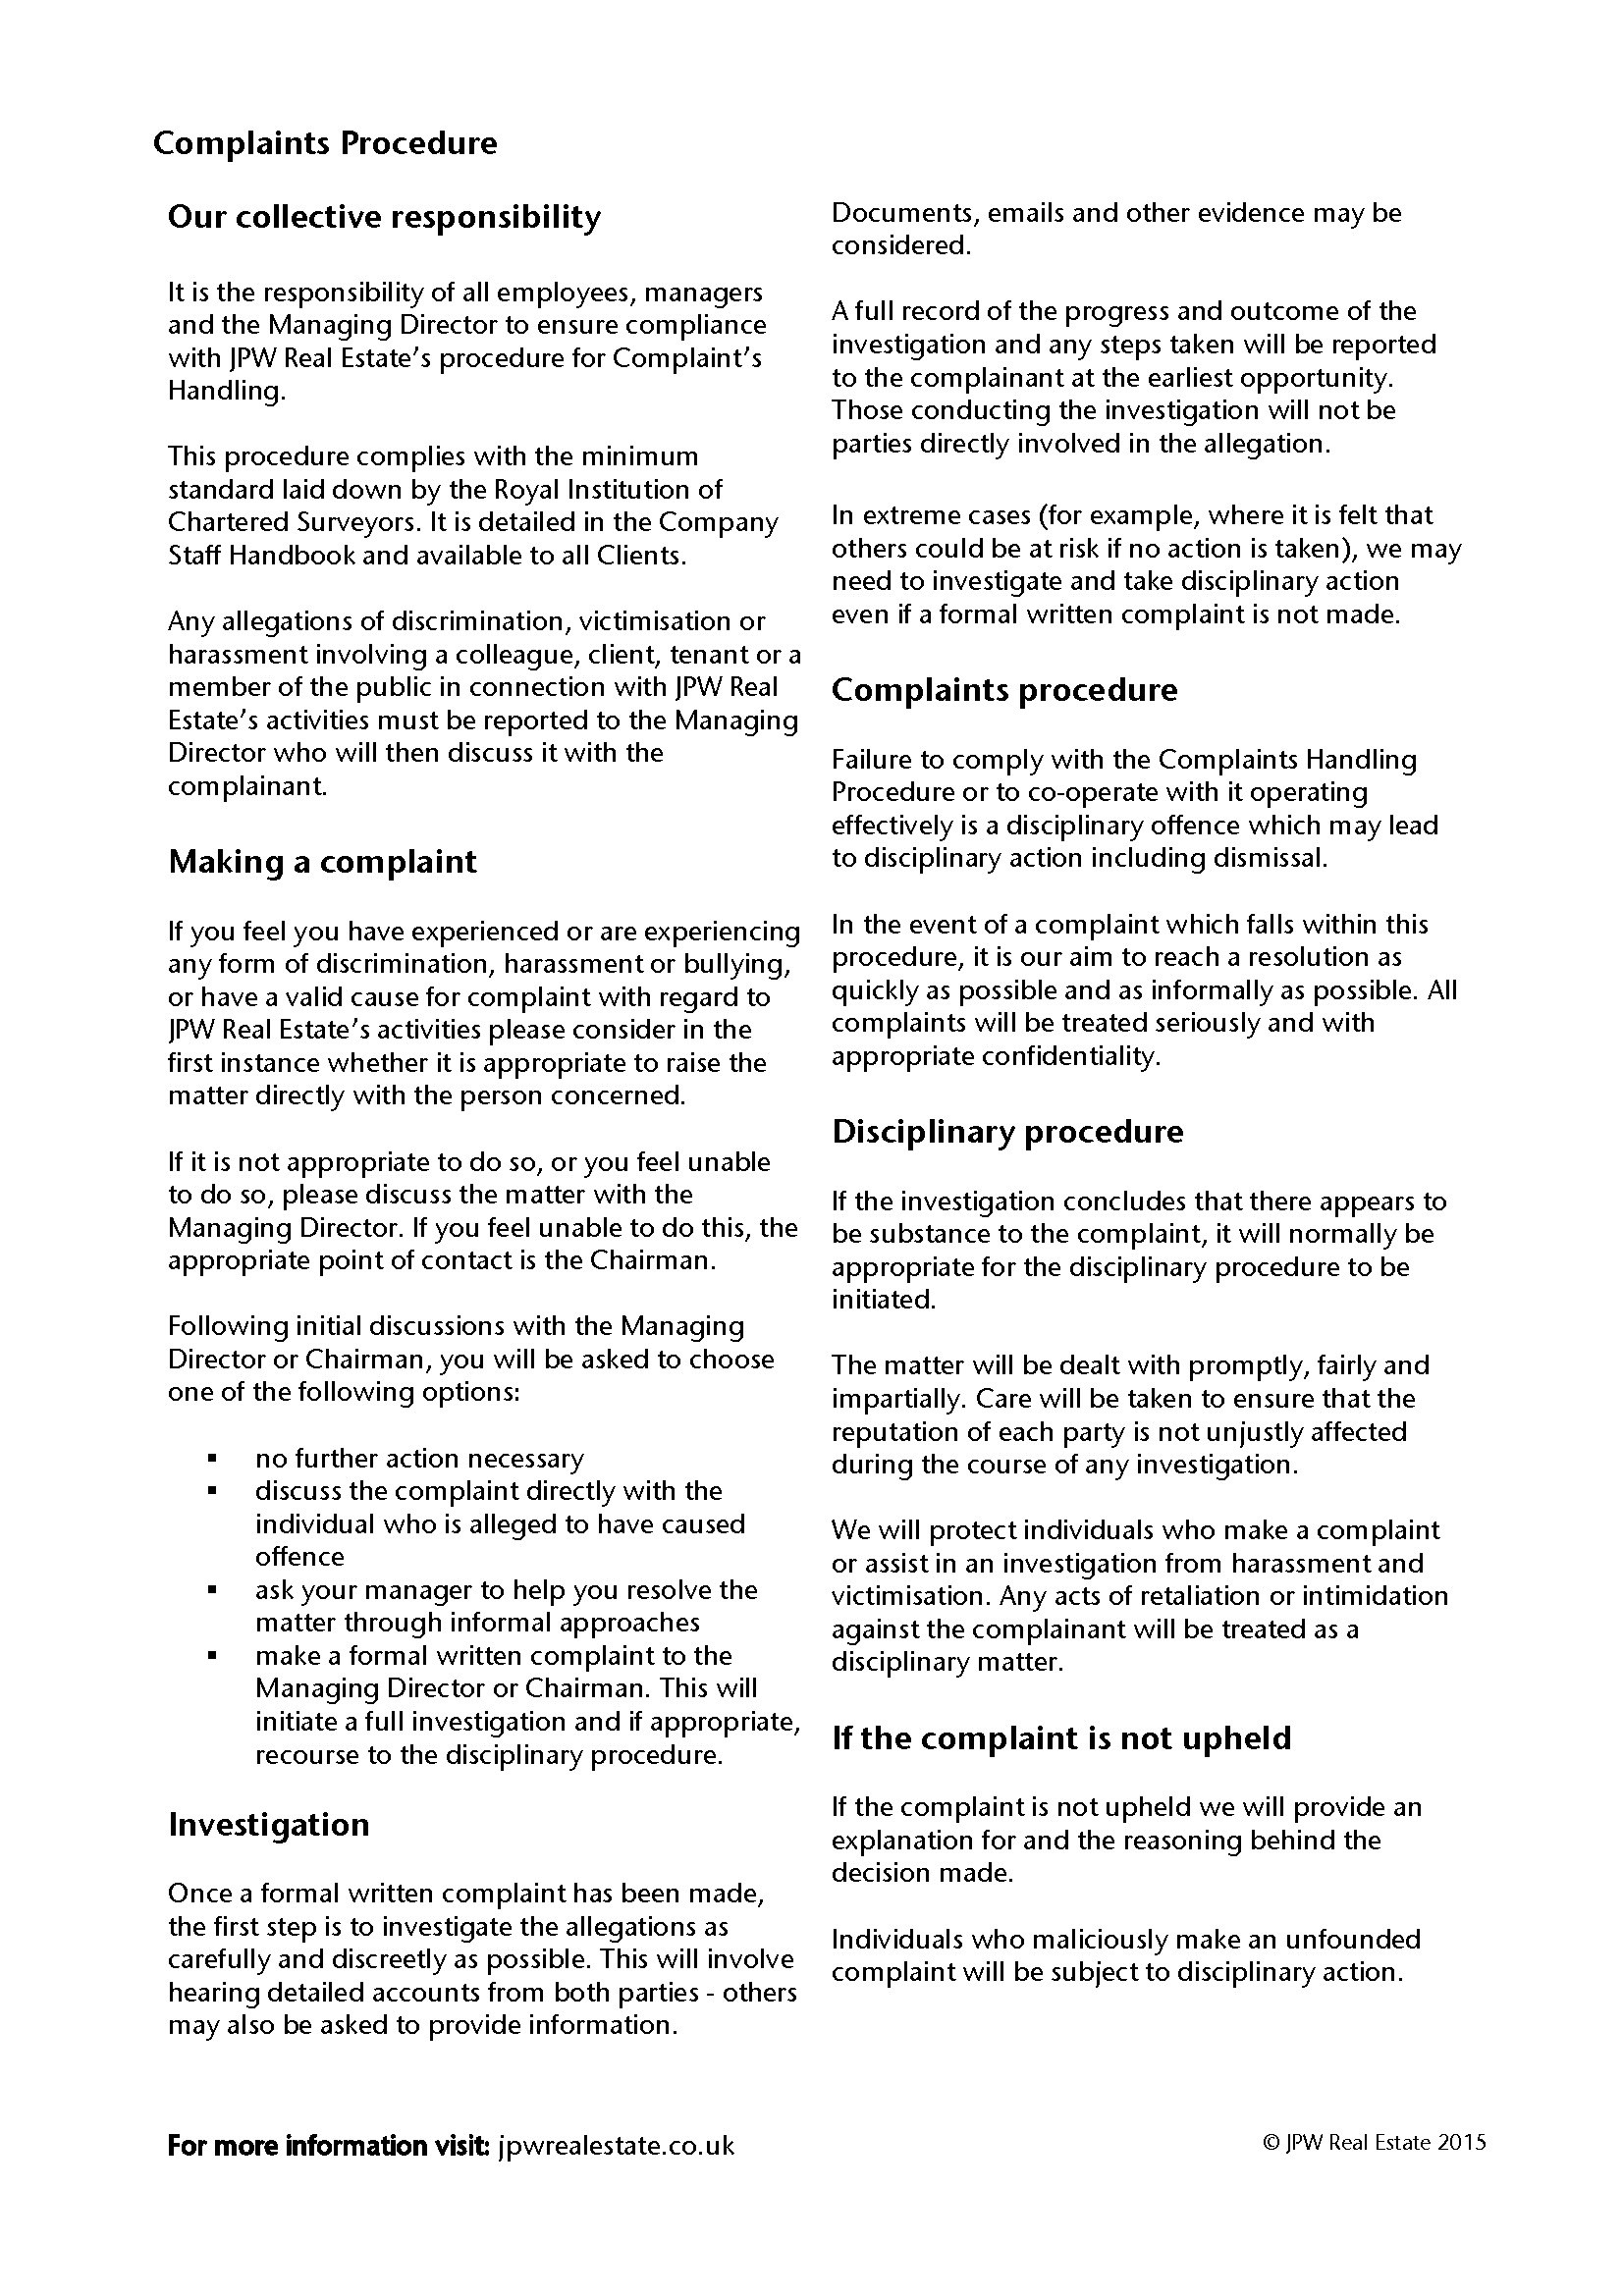 Jpw Equality Diversity Policy 2015 Page 4